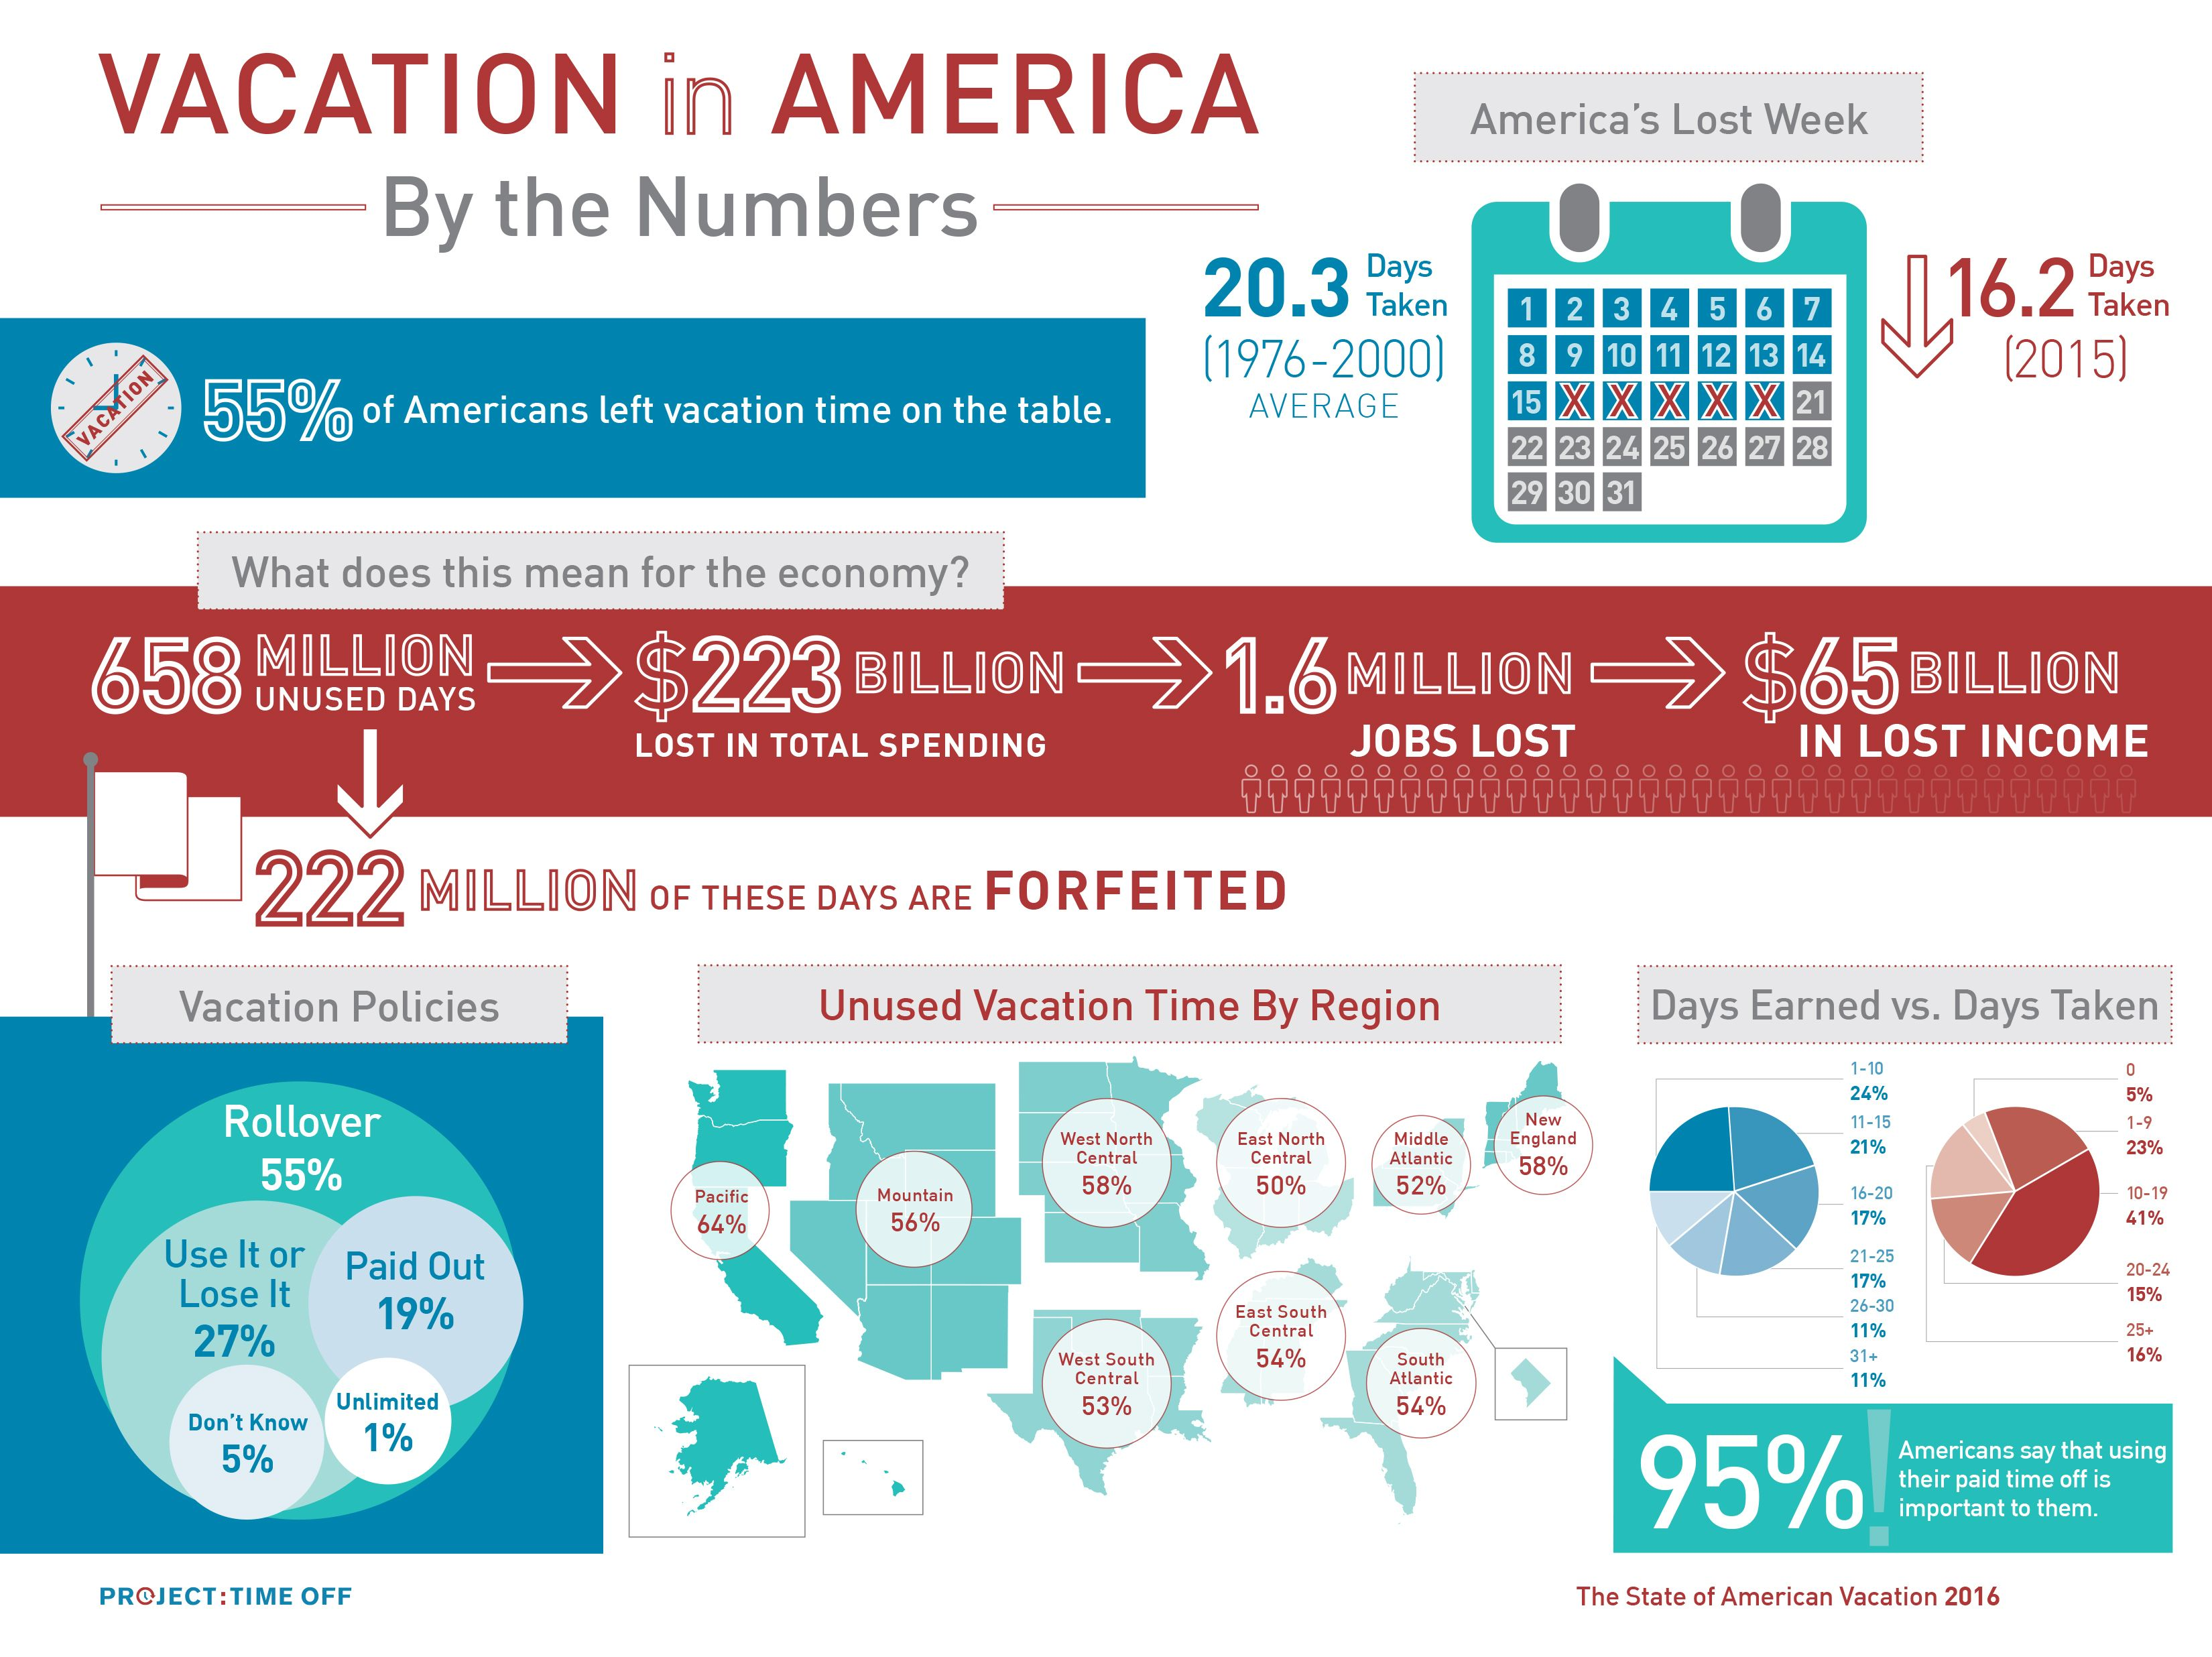 Vacation in America (Infographic)